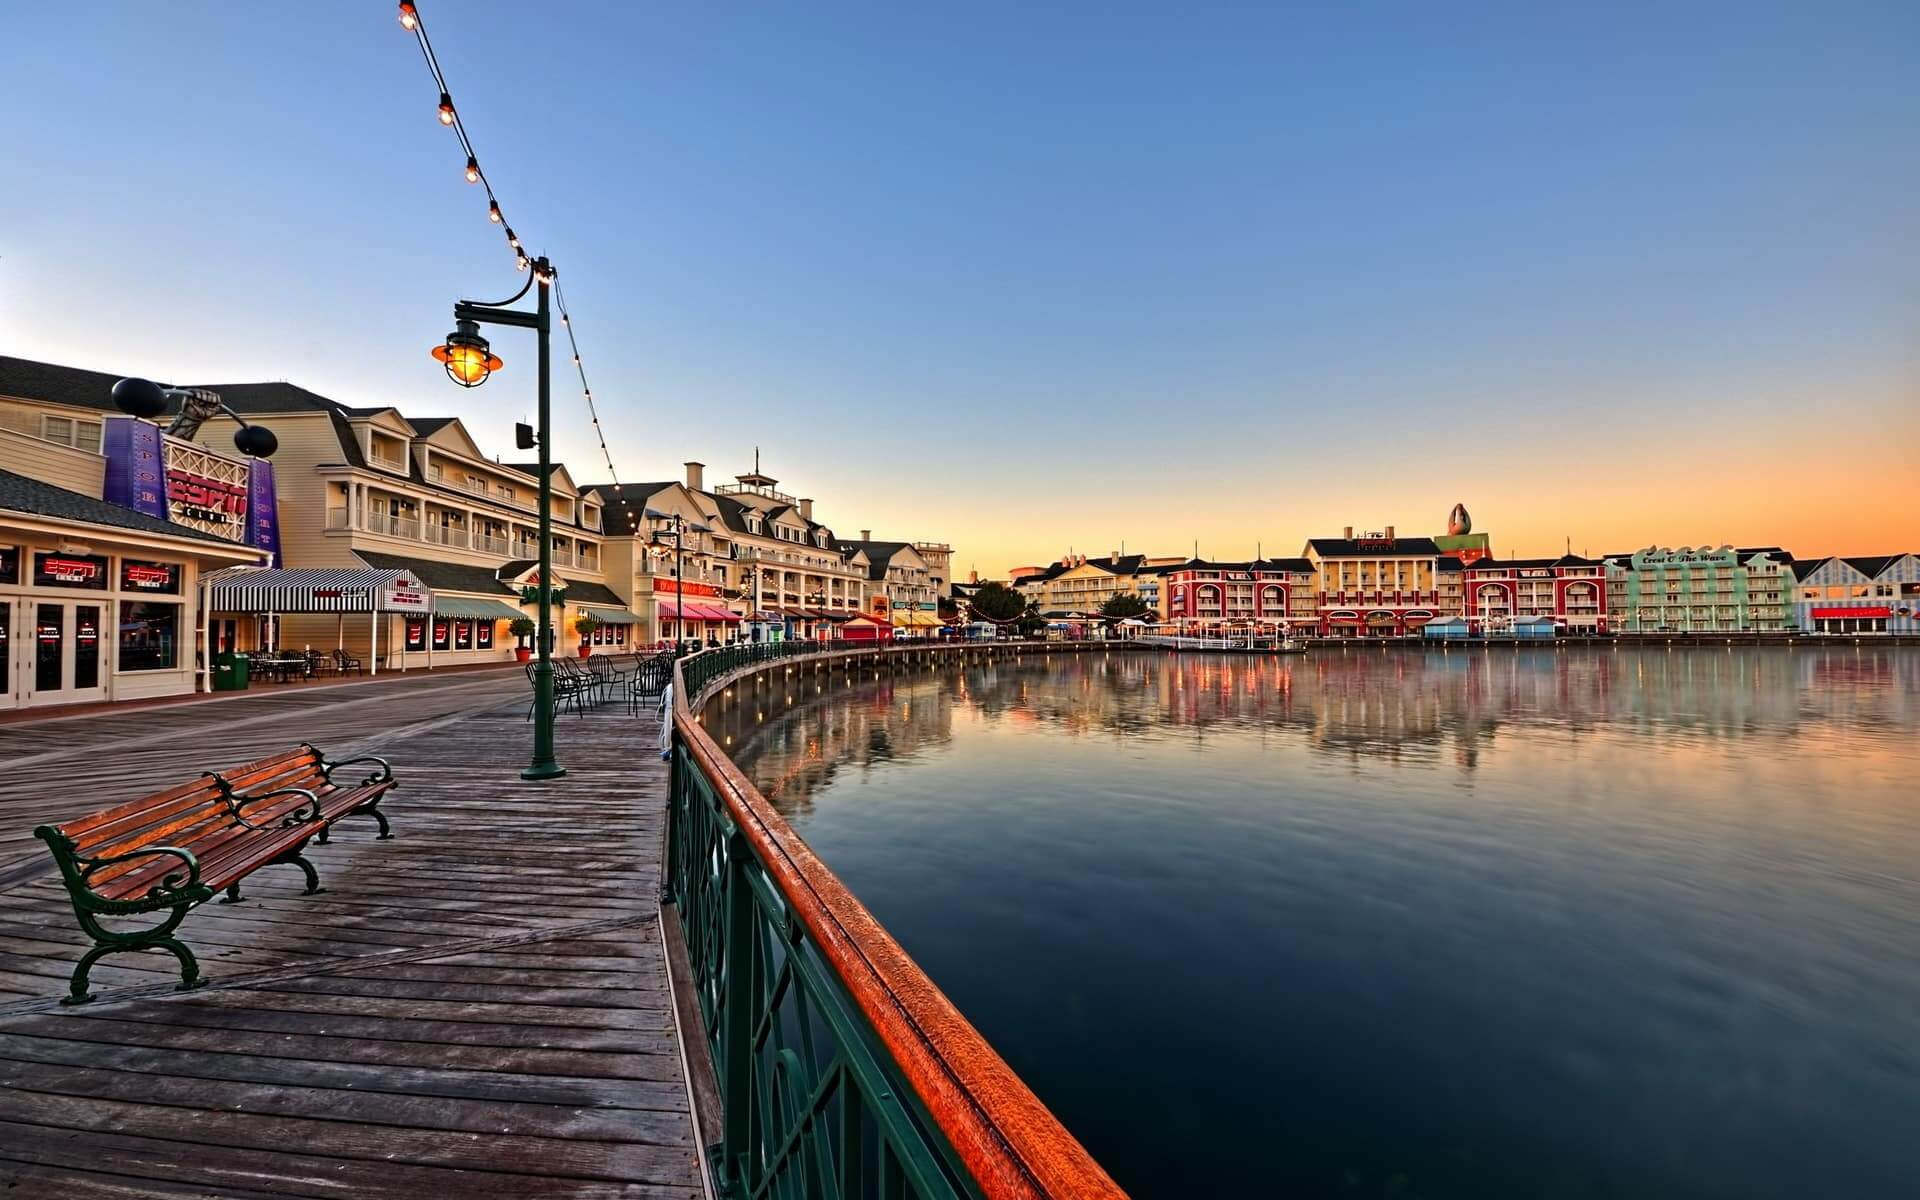 Disney's BoardWalk em Orlando